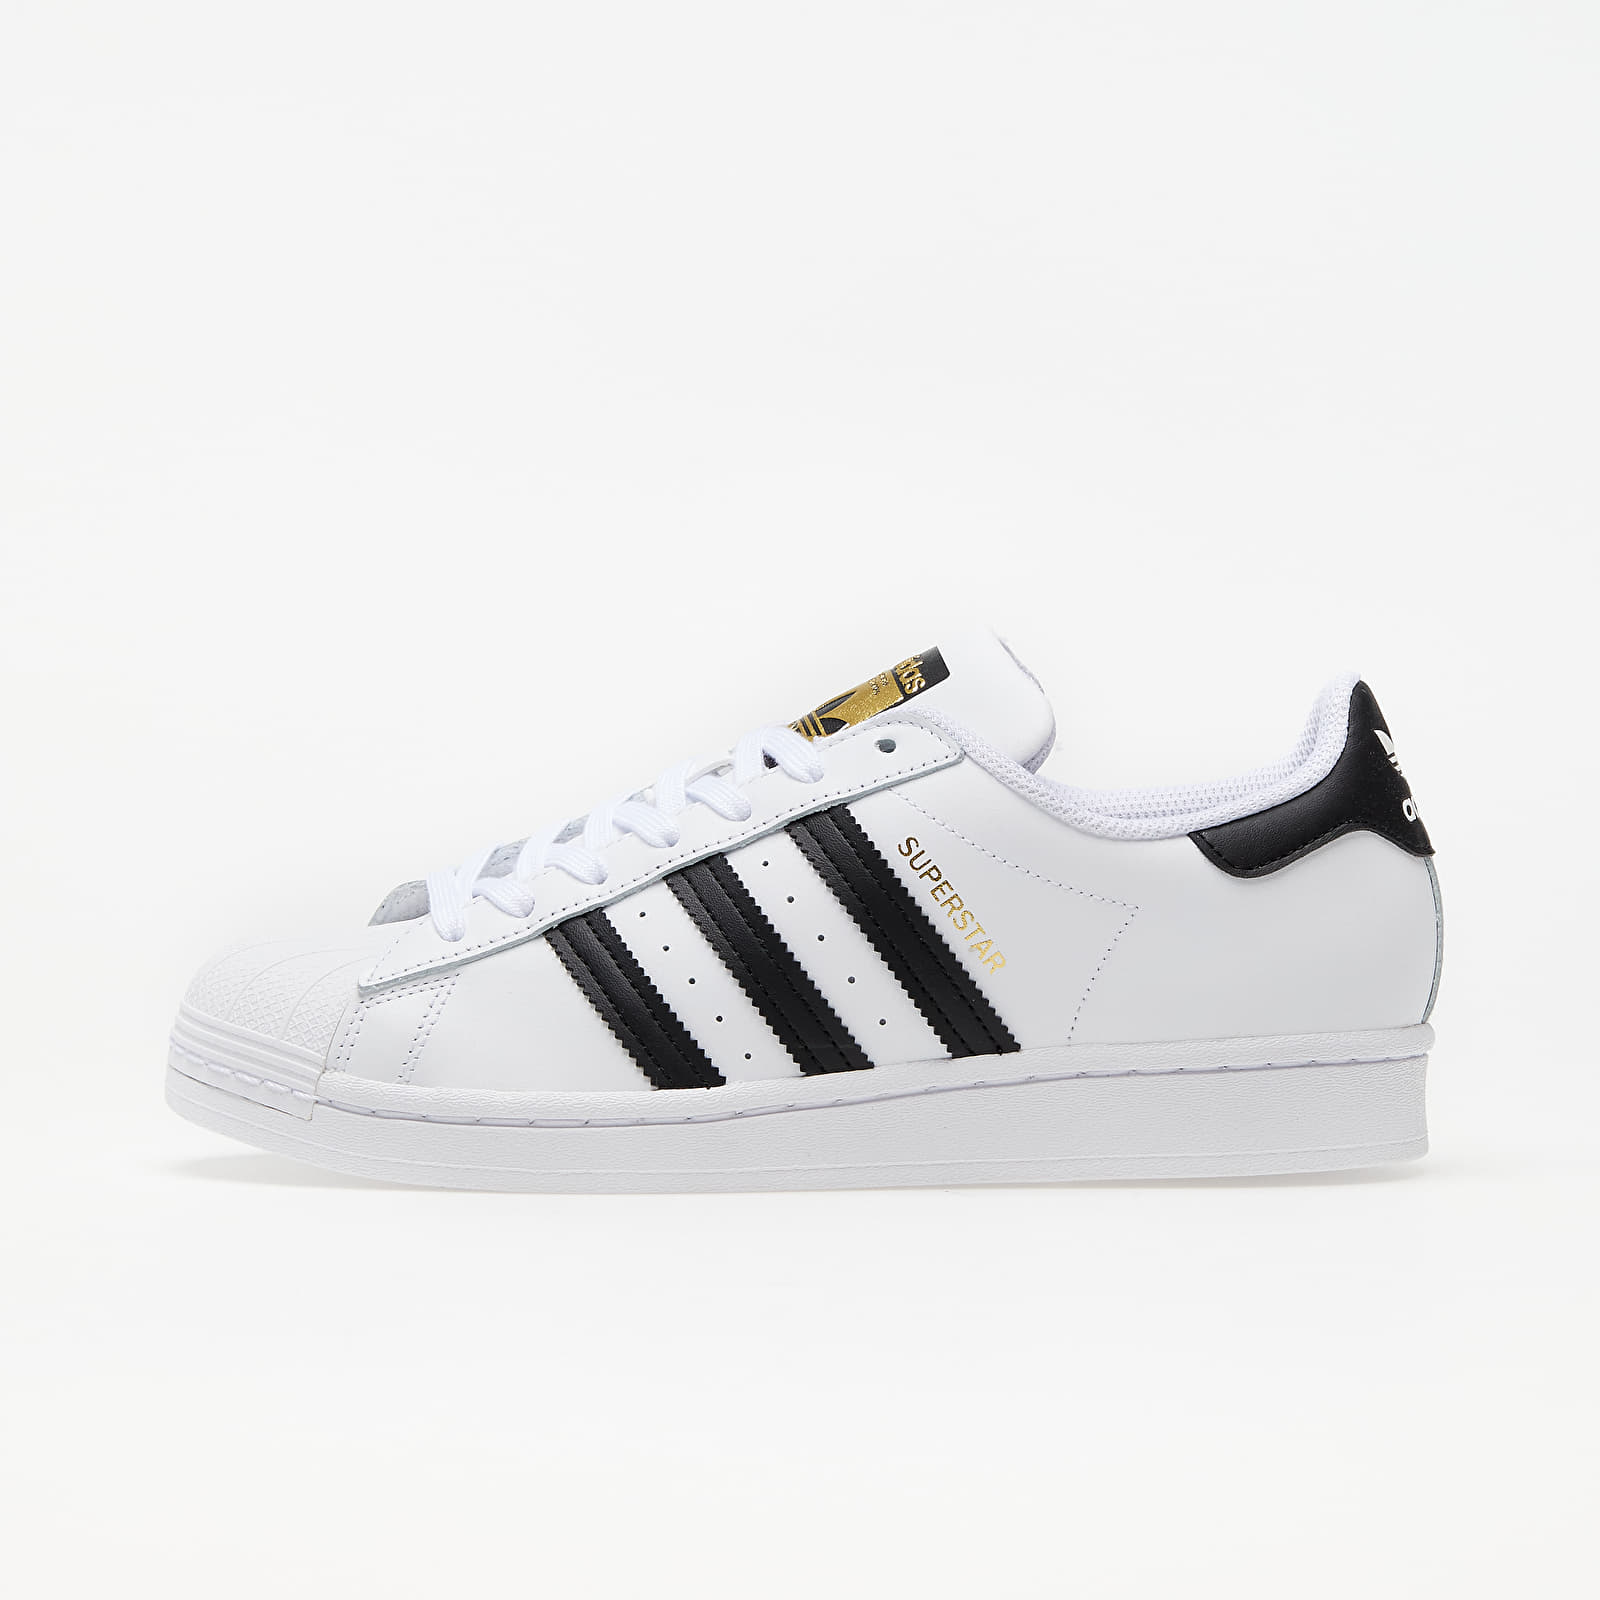 adidas Superstar Ftw White/ Core Black/ Ftw White EUR 39 1/3